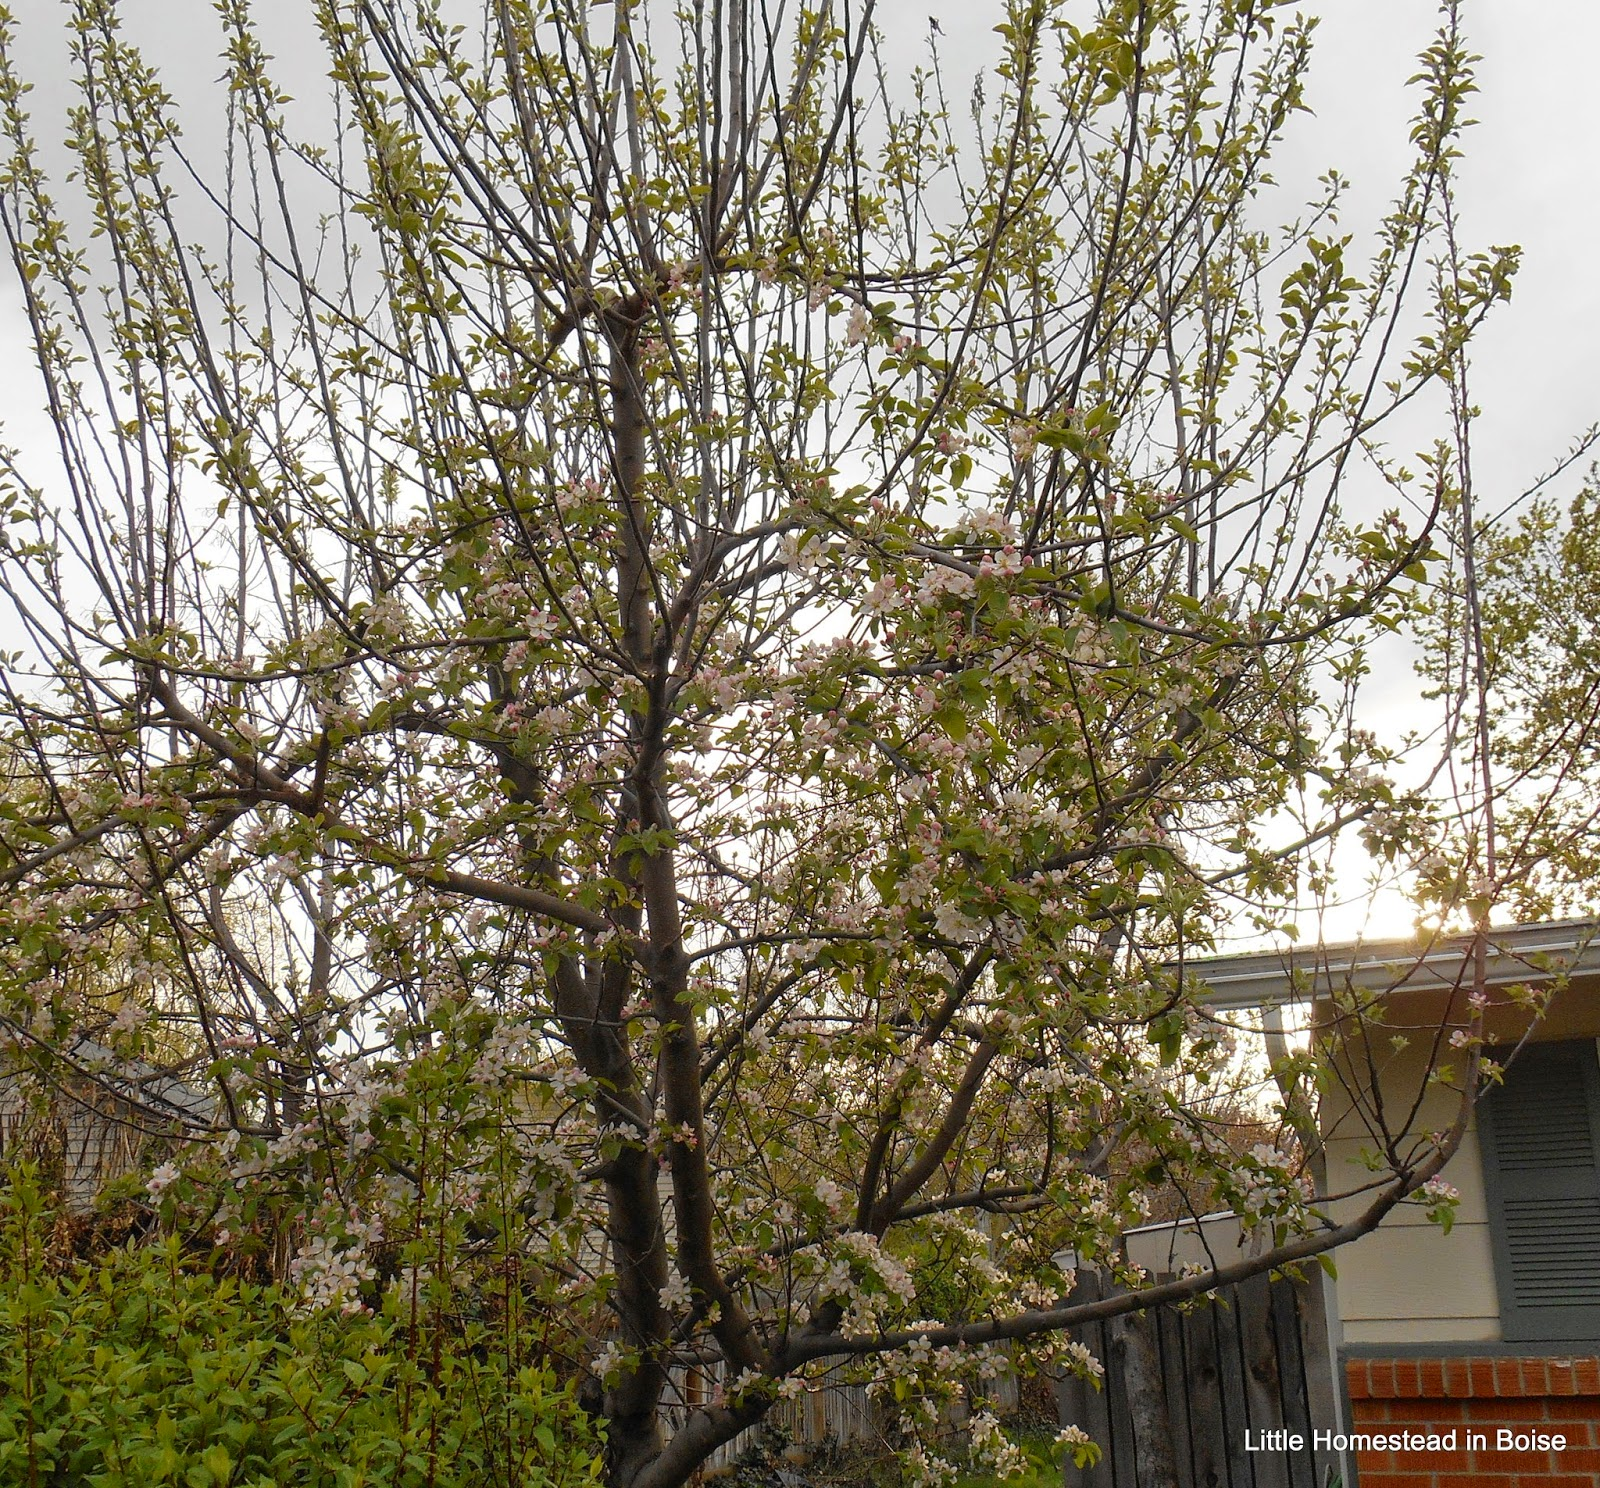 Little Homestead in Boise: Spring Has Sprung! Food Storage Re-Do ...